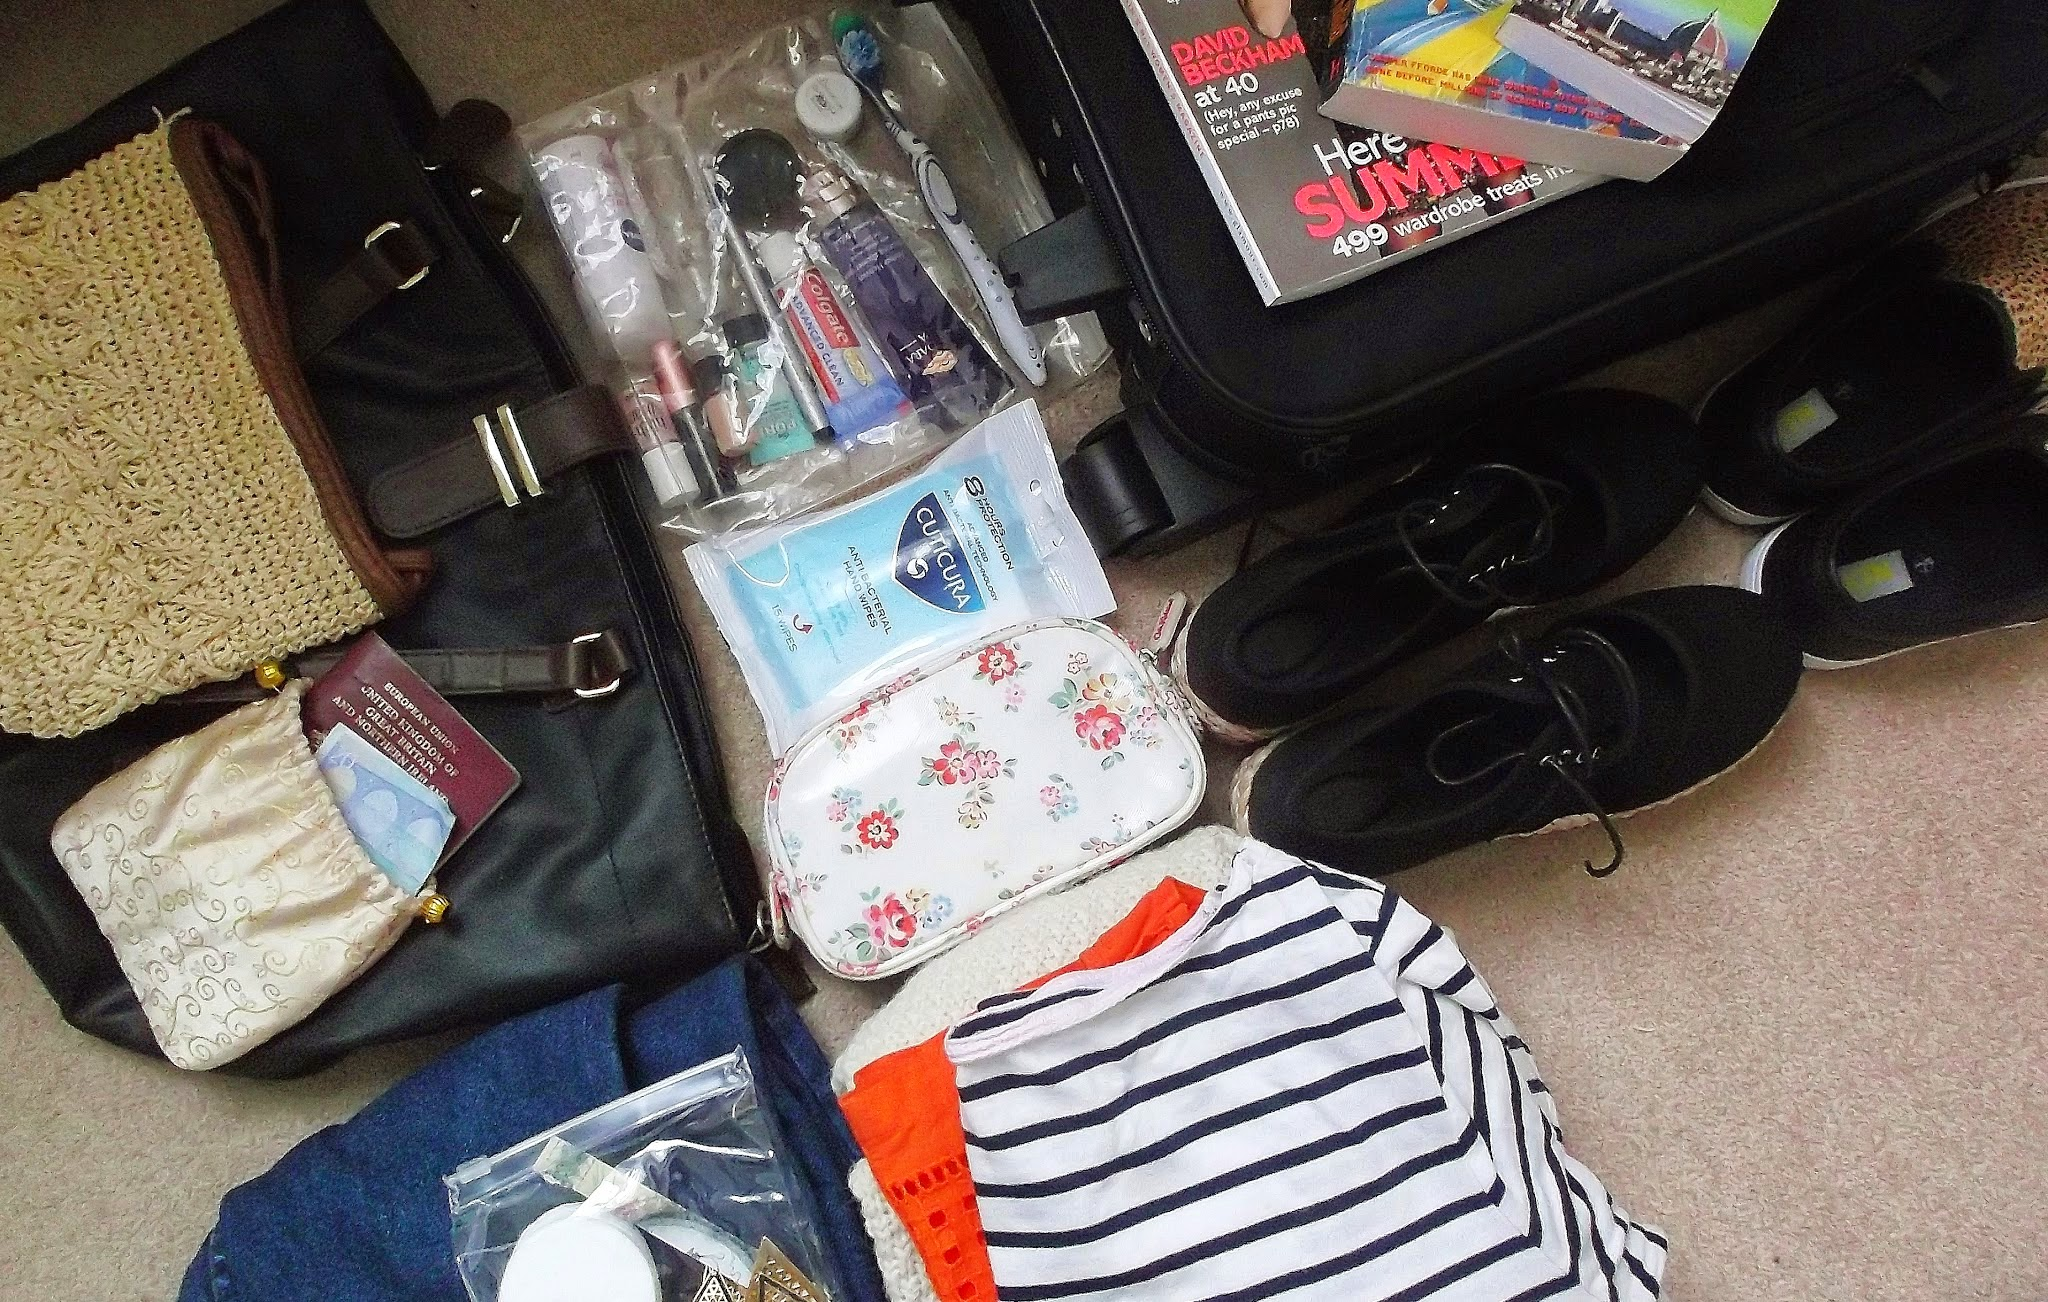 small suitcase laid out on floor surrounded by clothes, shoes and toiletries